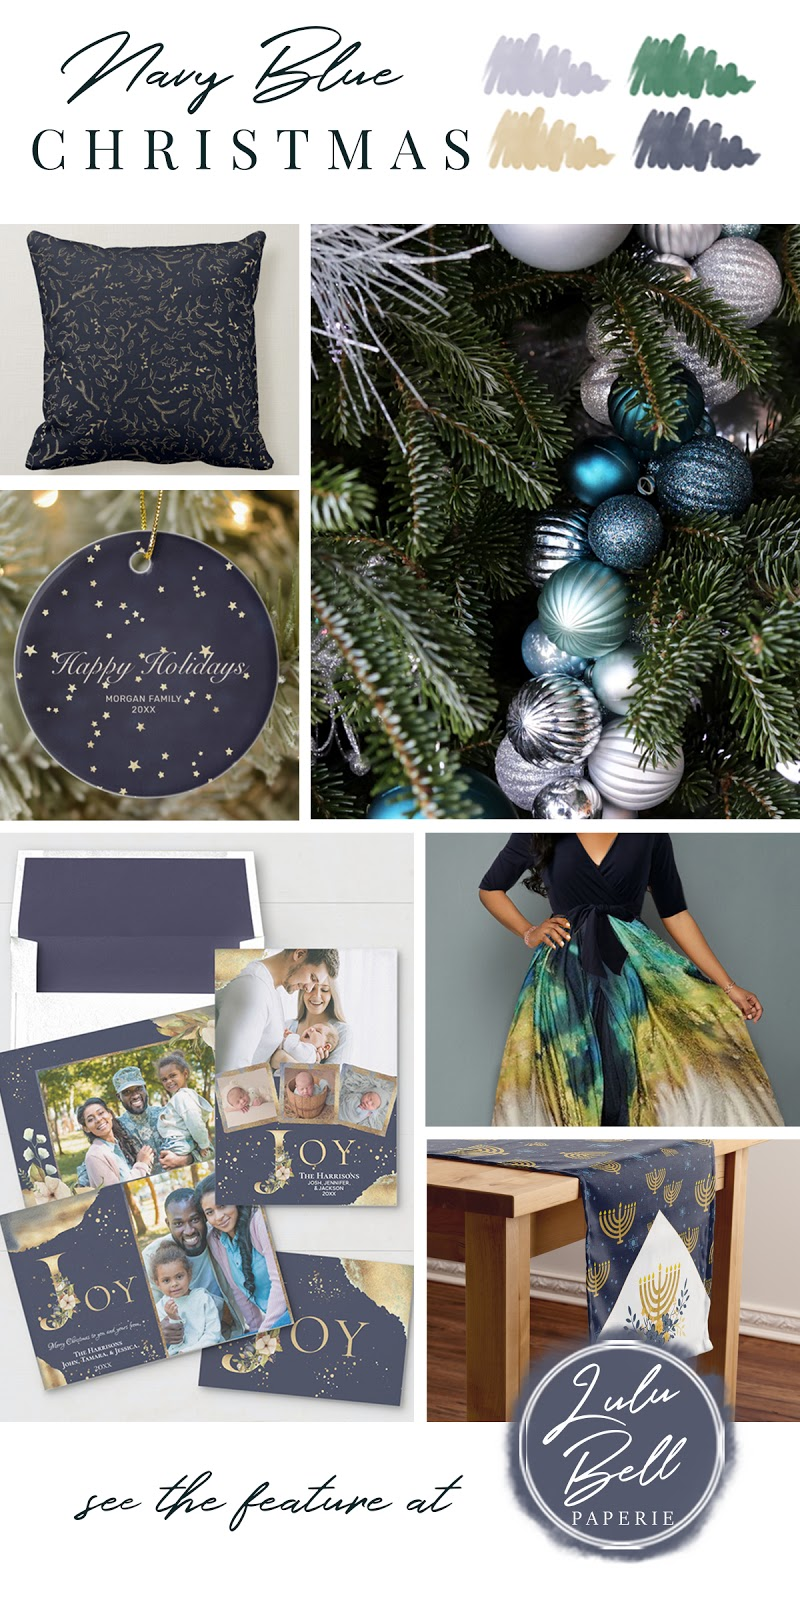 Navy Blue Gold and Green Christmas Color Palette Inspiration - Throw Pillow, Tree Photography, Holiday Ornaments, Stationery Set, Party Dress, and Table Runner